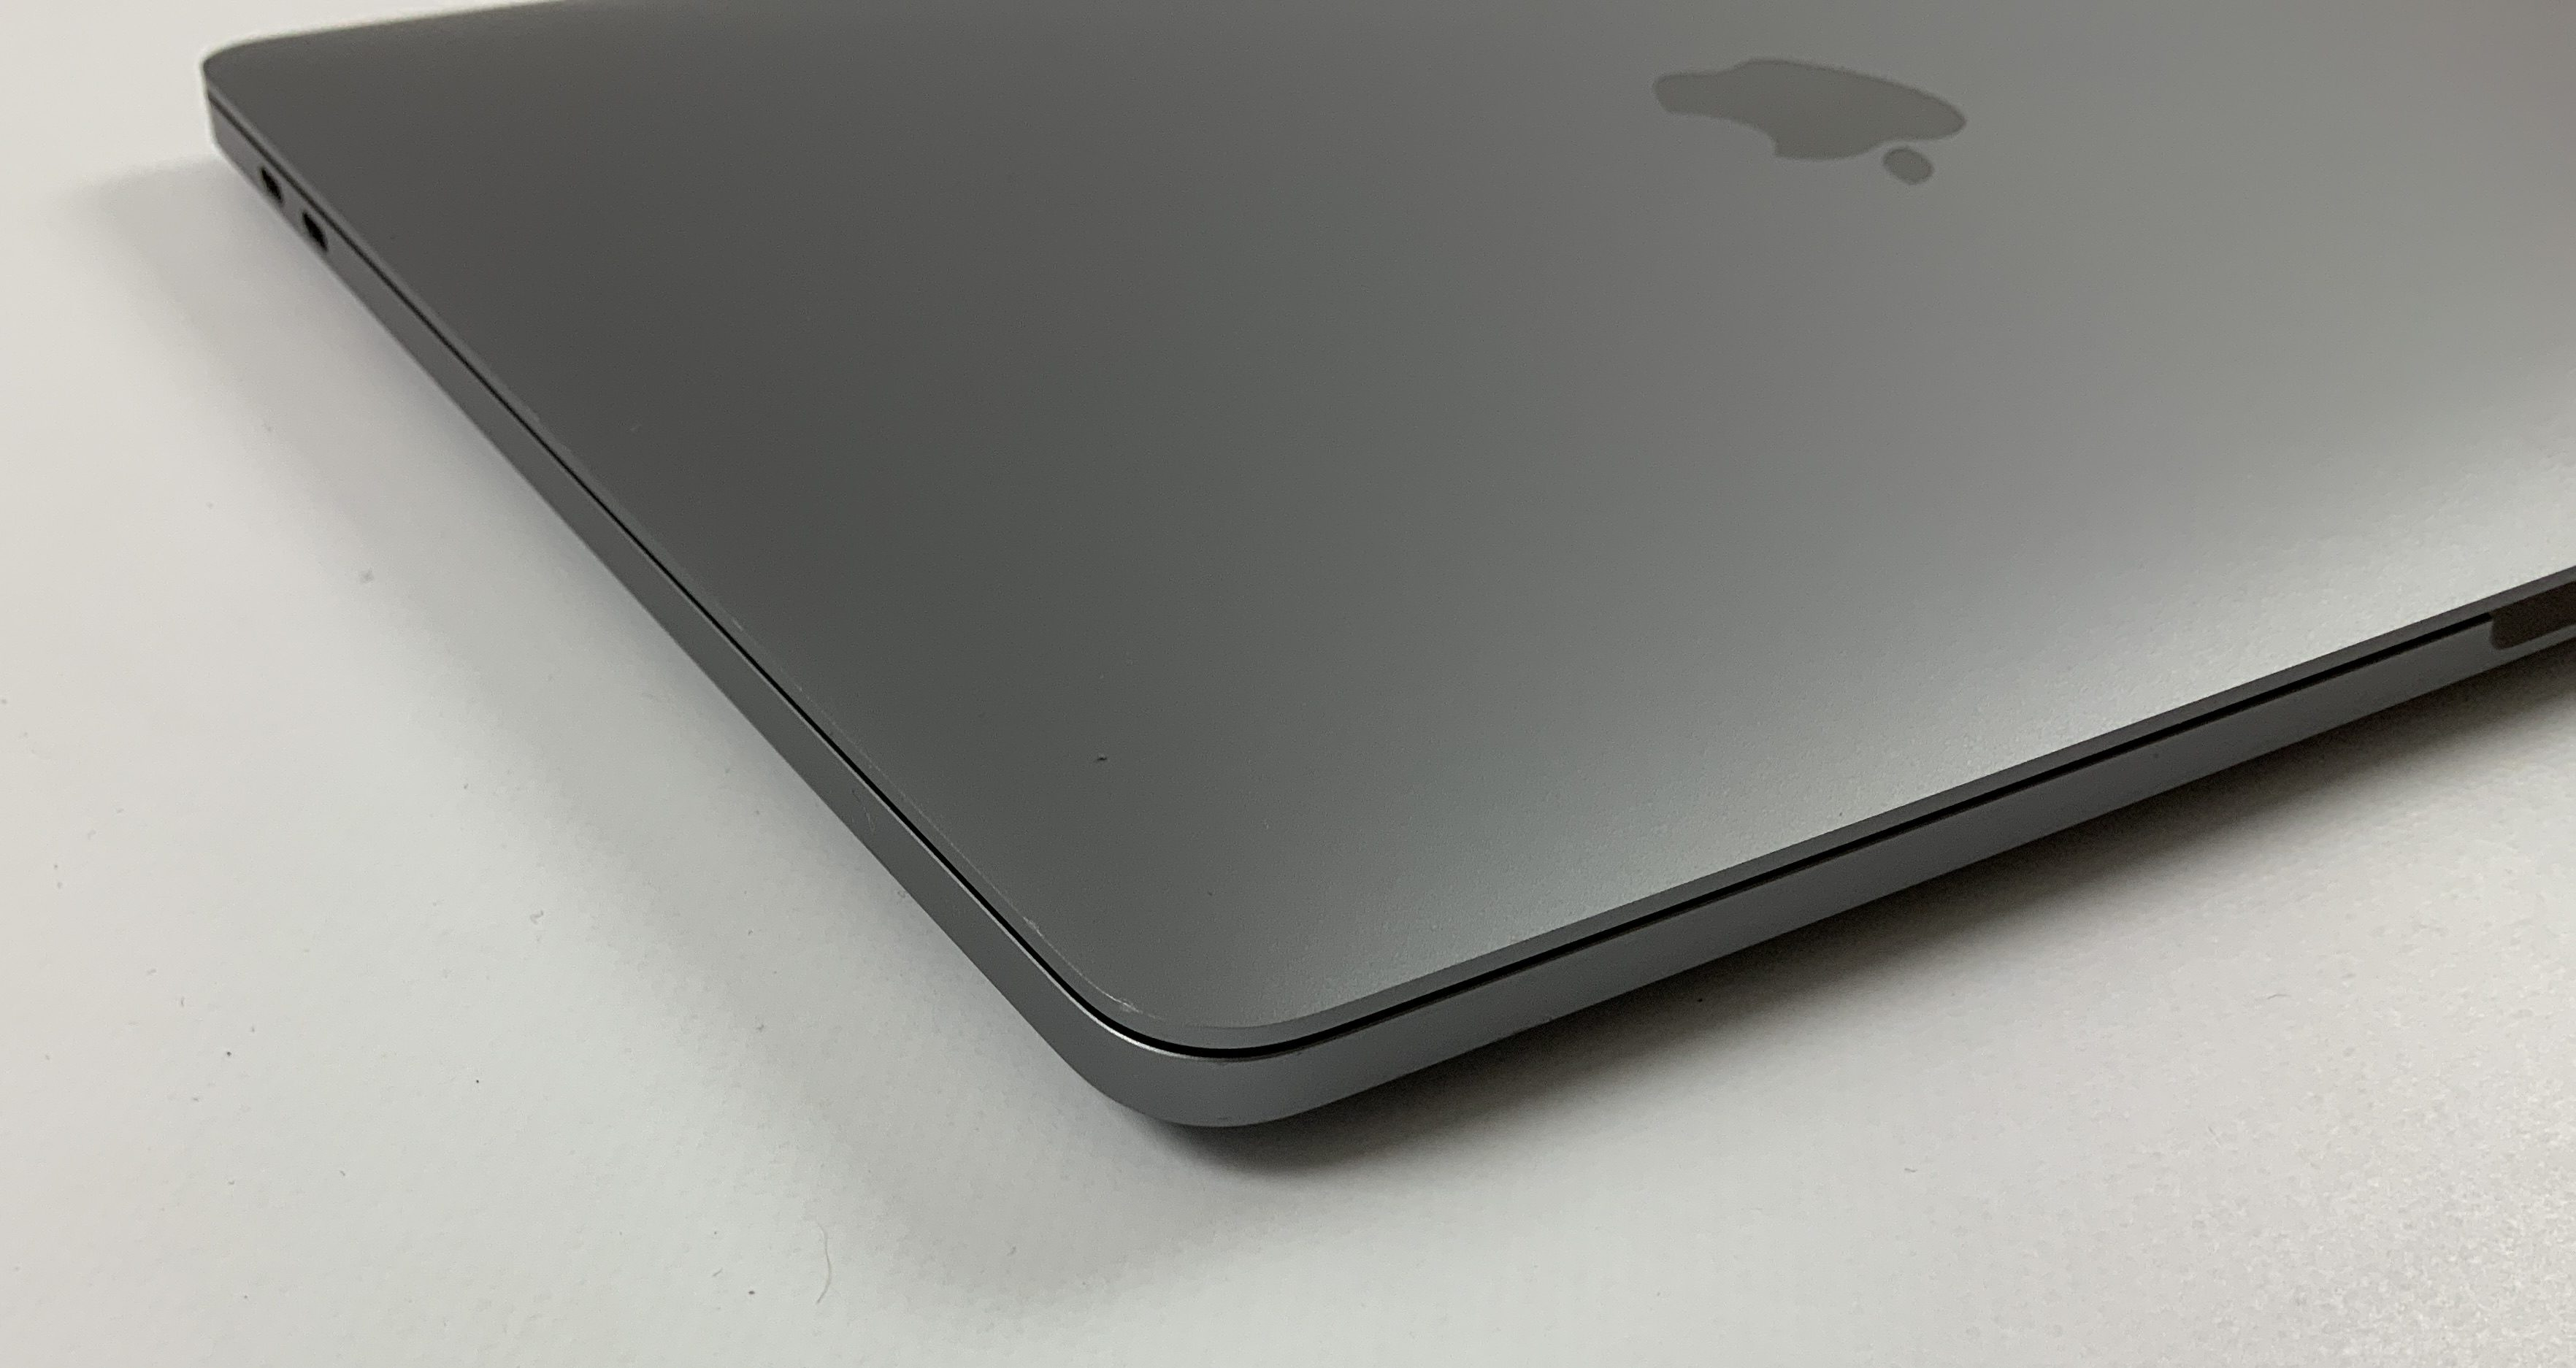 "MacBook Pro 13"" 4TBT Mid 2019 (Intel Quad-Core i5 2.4 GHz 8 GB RAM 256 GB SSD), Space Gray, Intel Quad-Core i5 2.4 GHz, 8 GB RAM, 256 GB SSD, obraz 3"